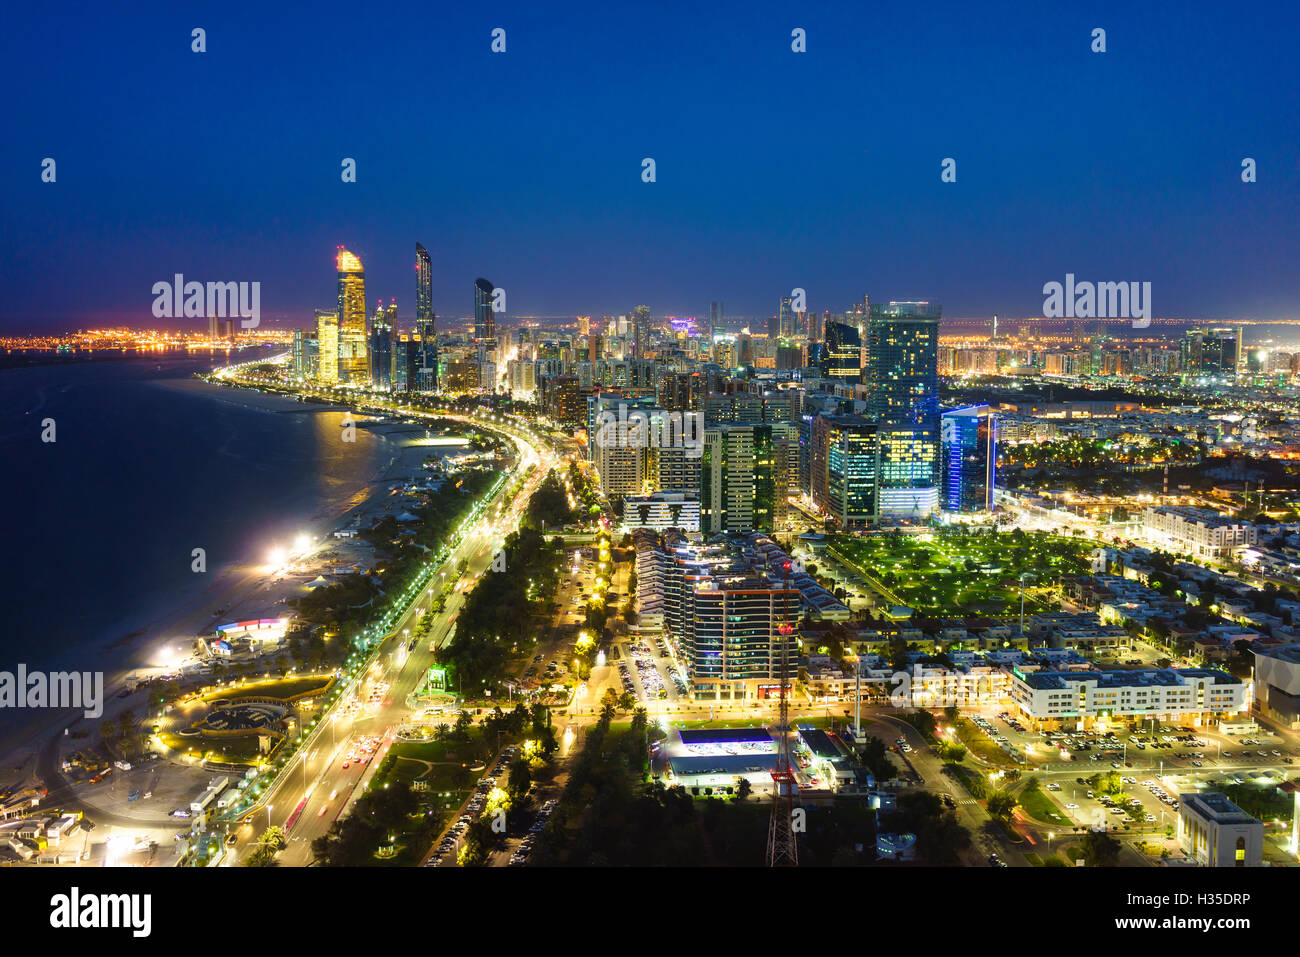 Skyline et corniche, Al district Markaziyah par nuit, Abu Dhabi, Émirats arabes unis, Moyen Orient Photo Stock